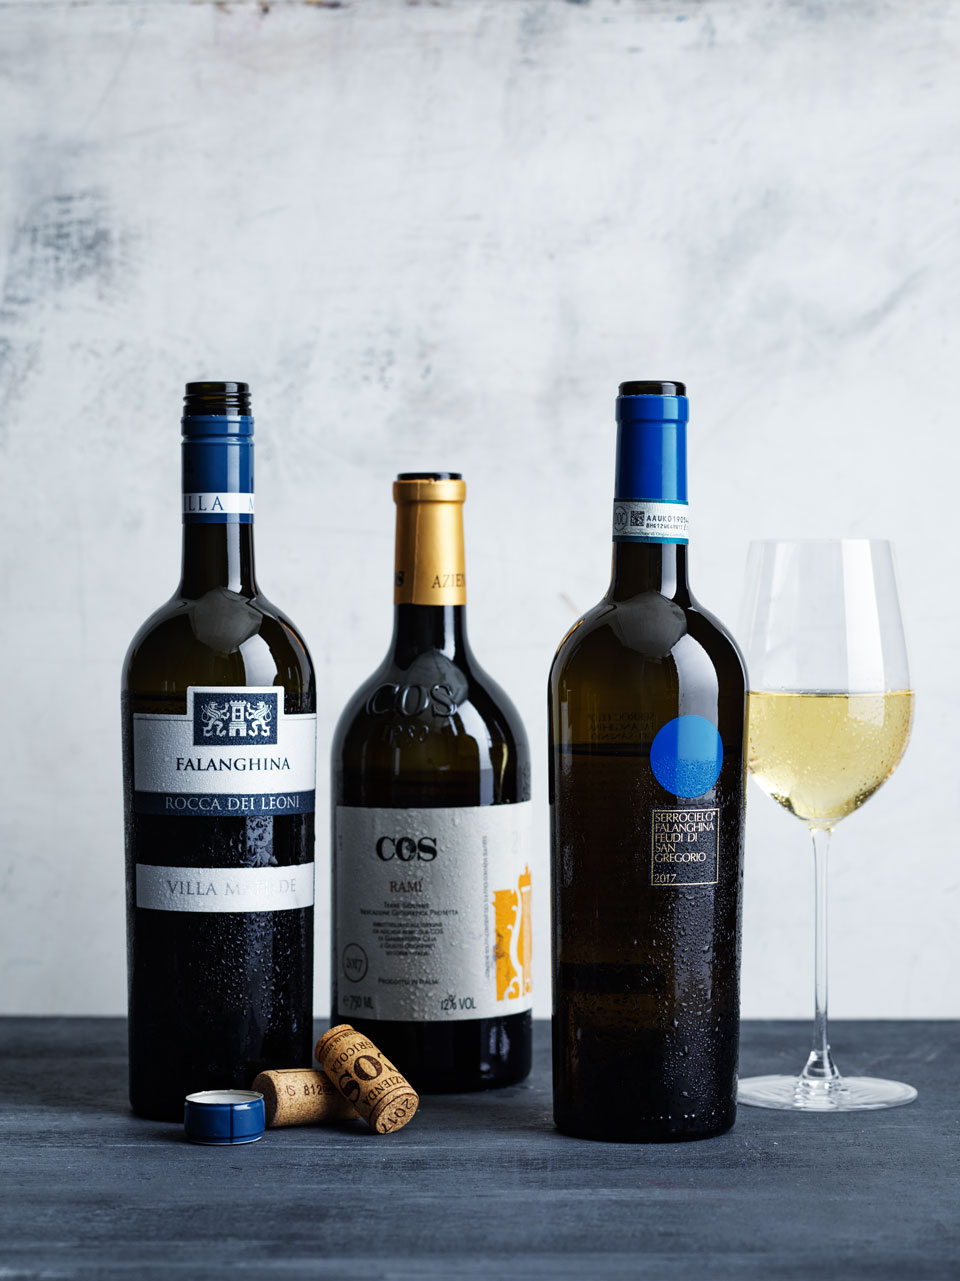 The falanghina showed floral and perfumed aromas.